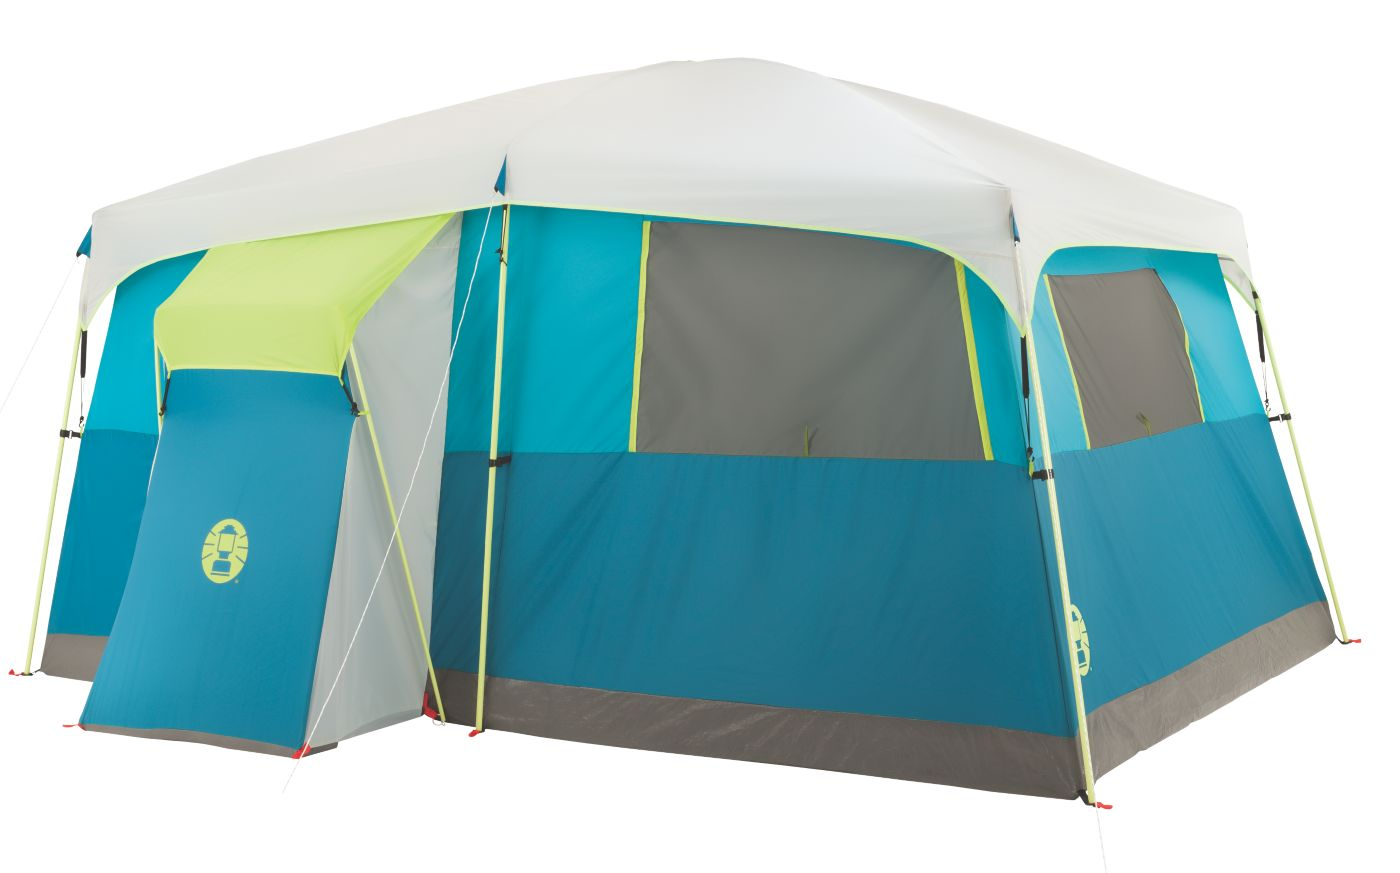 ... Tenaya Lake™ Fast Pitch™ 8-Person Cabin with Closet ...  sc 1 st  Coleman & 8 Person Tent | Coleman Tents | Coleman